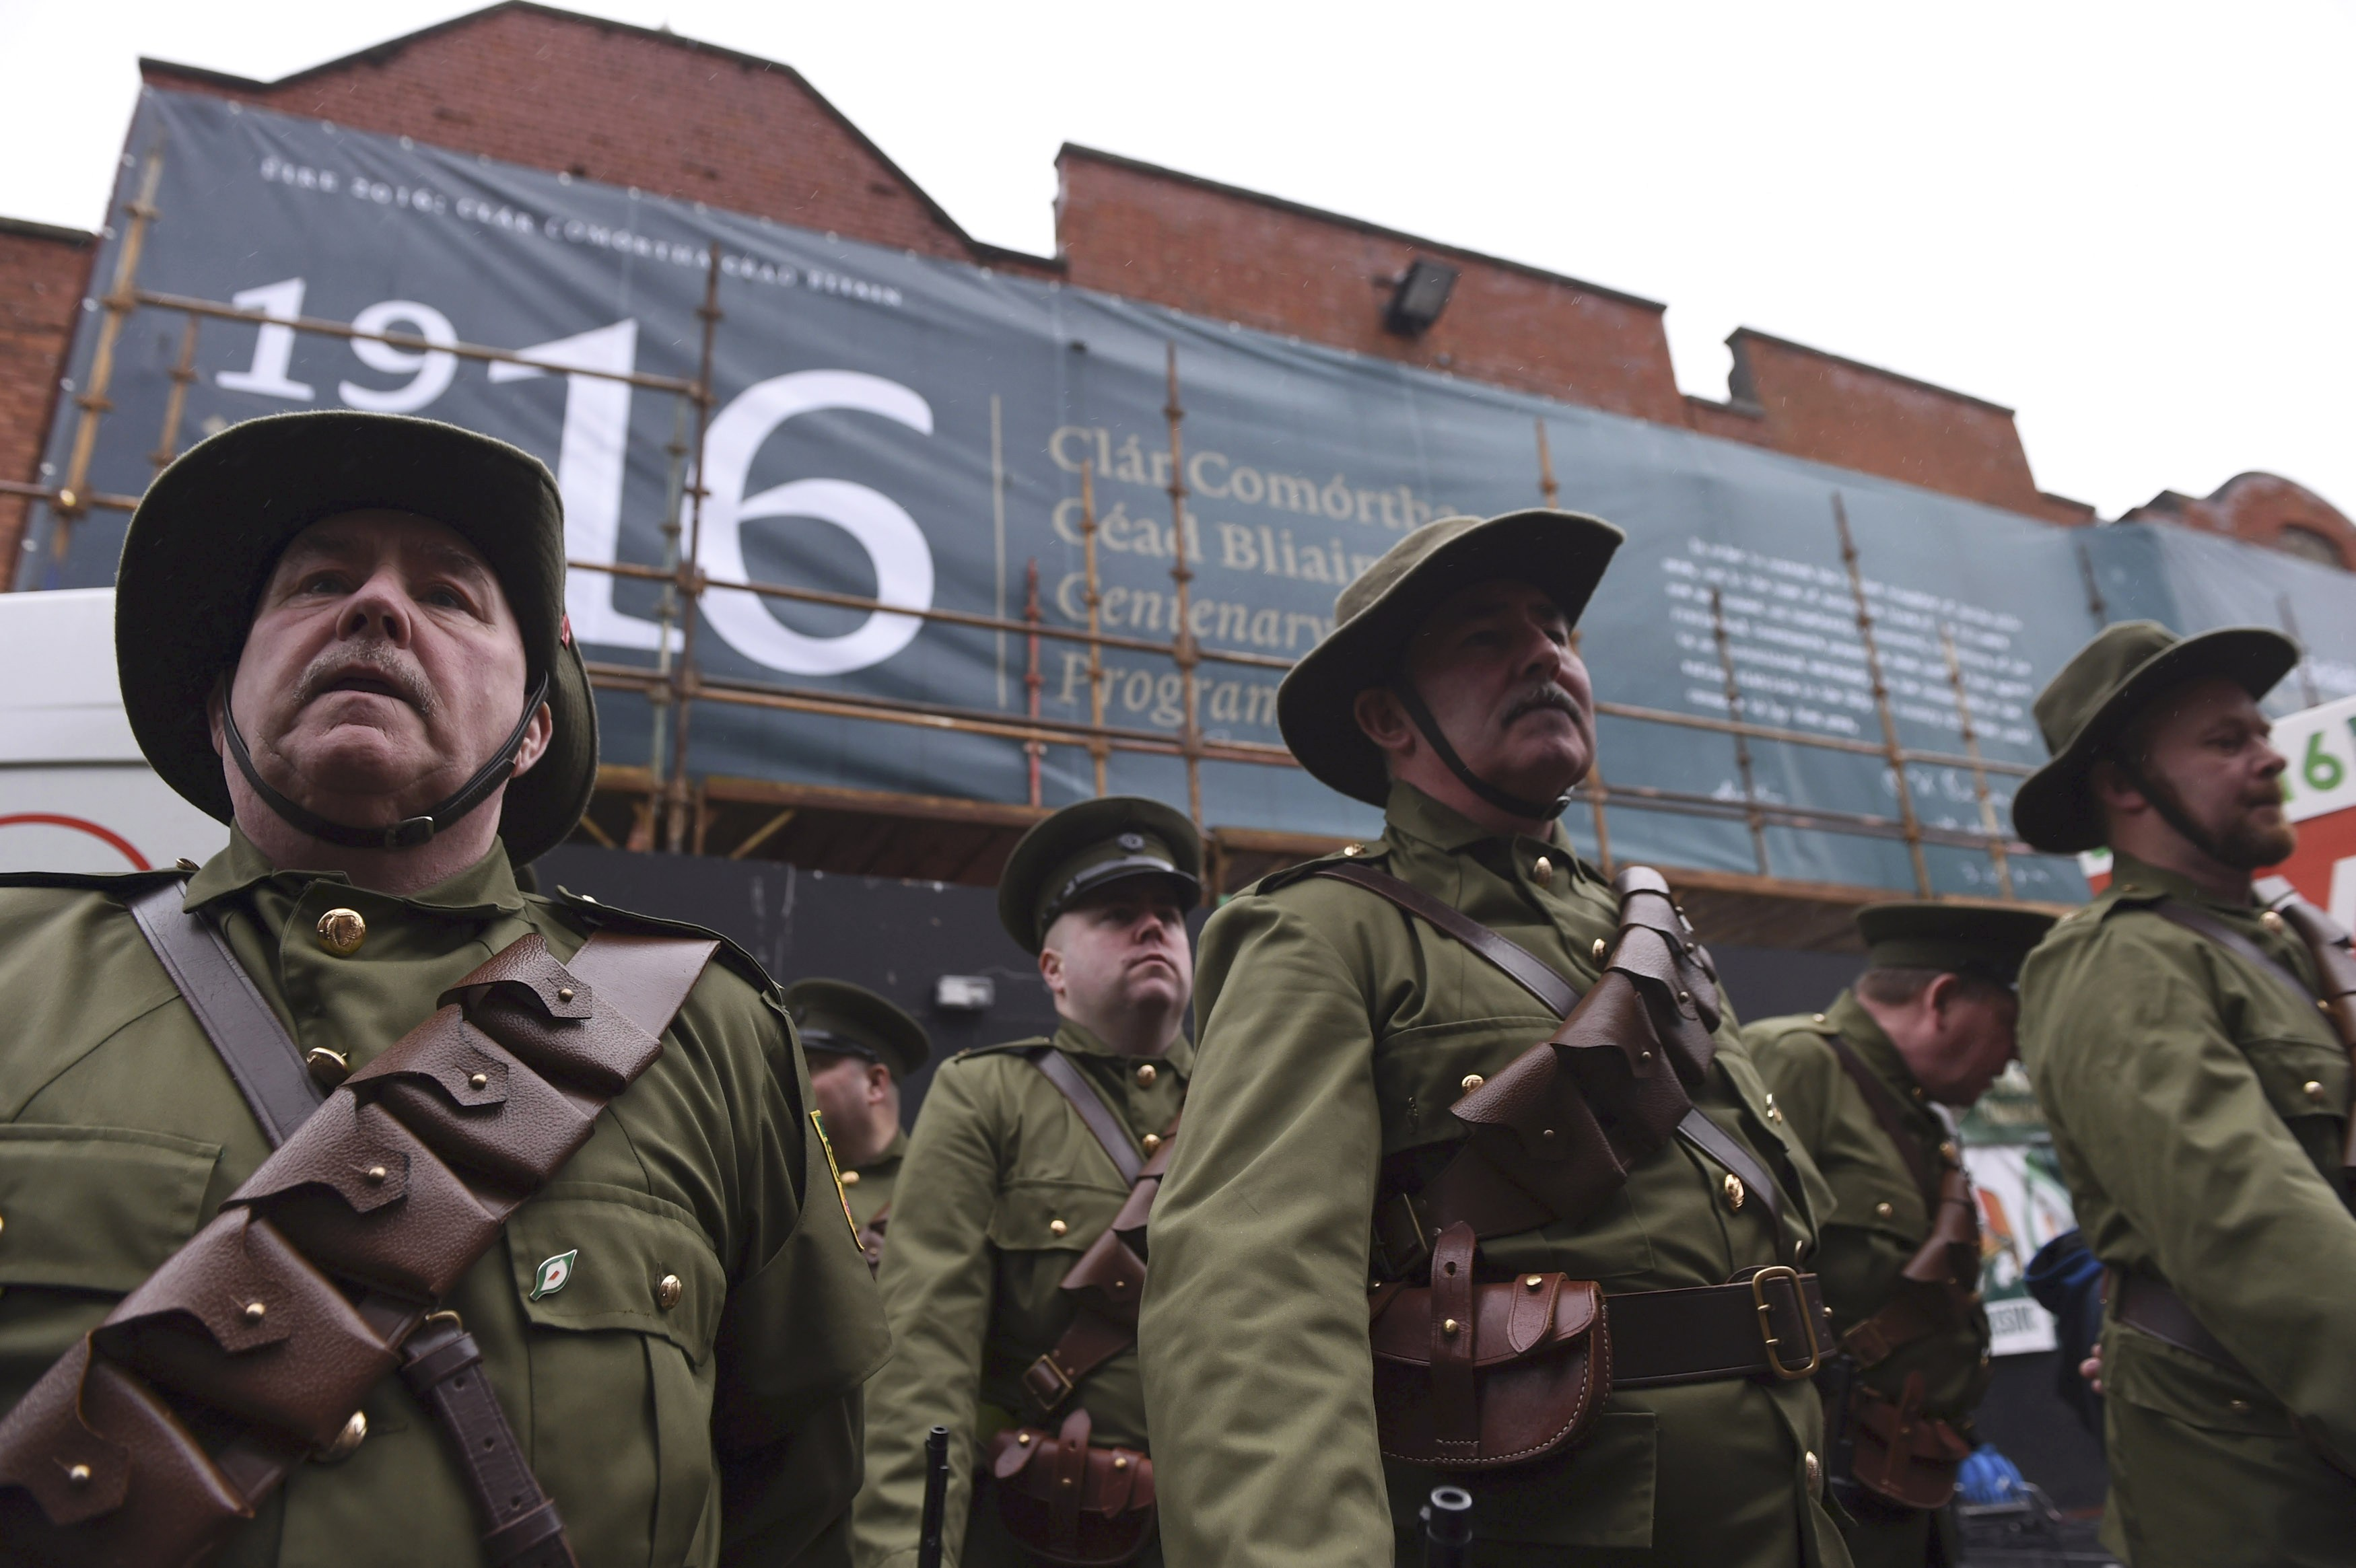 Members of the Finglas 1916 commemoration group attend a Sinn Fein rally to save Moore Street in Dublin Jan. 31. Ireland's political system emerged from the rubble of the anti-British 1916 Easter Rising, which is marking its centenary this year. (CNS photo/Clodagh Kilcoyne, Reuters)